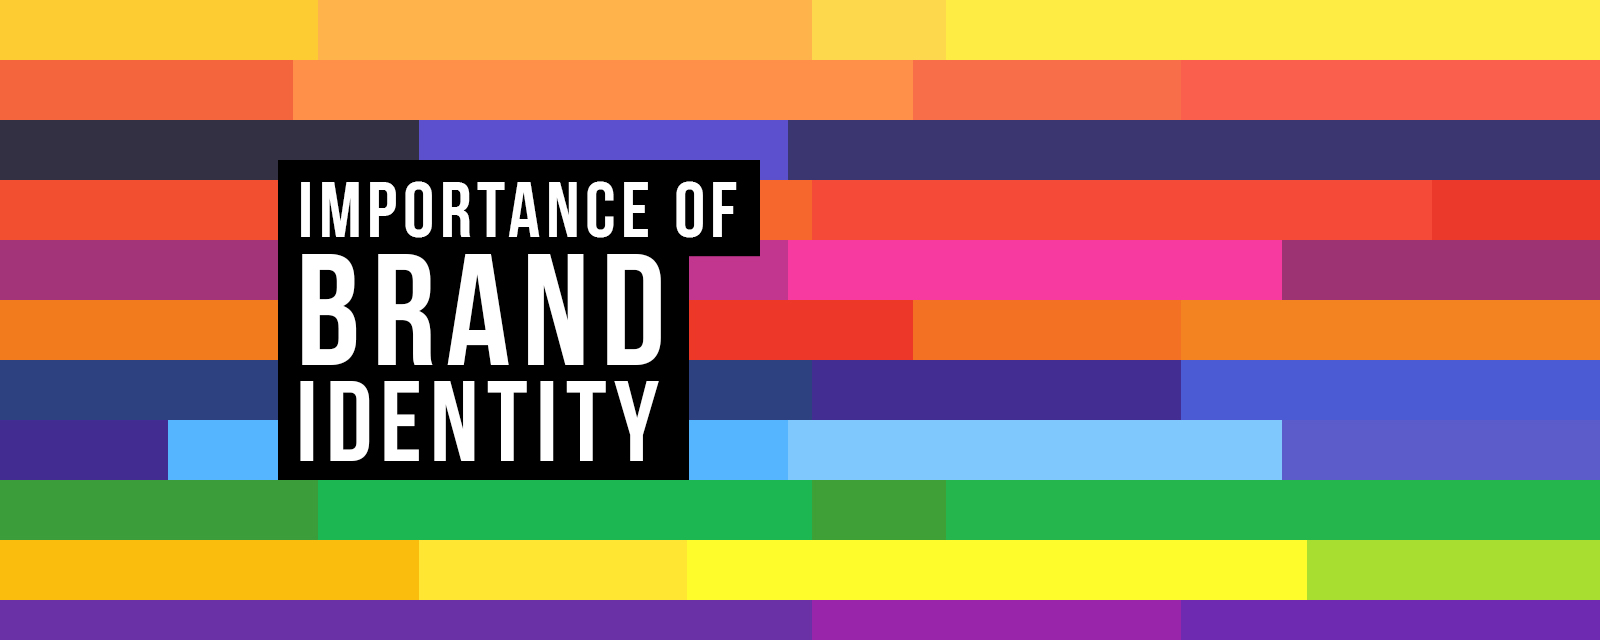 the importance of brand identity Why it's important to have a strong brand identity a well-designed brand identity rolls your company forward, increasing momentum in recognition.